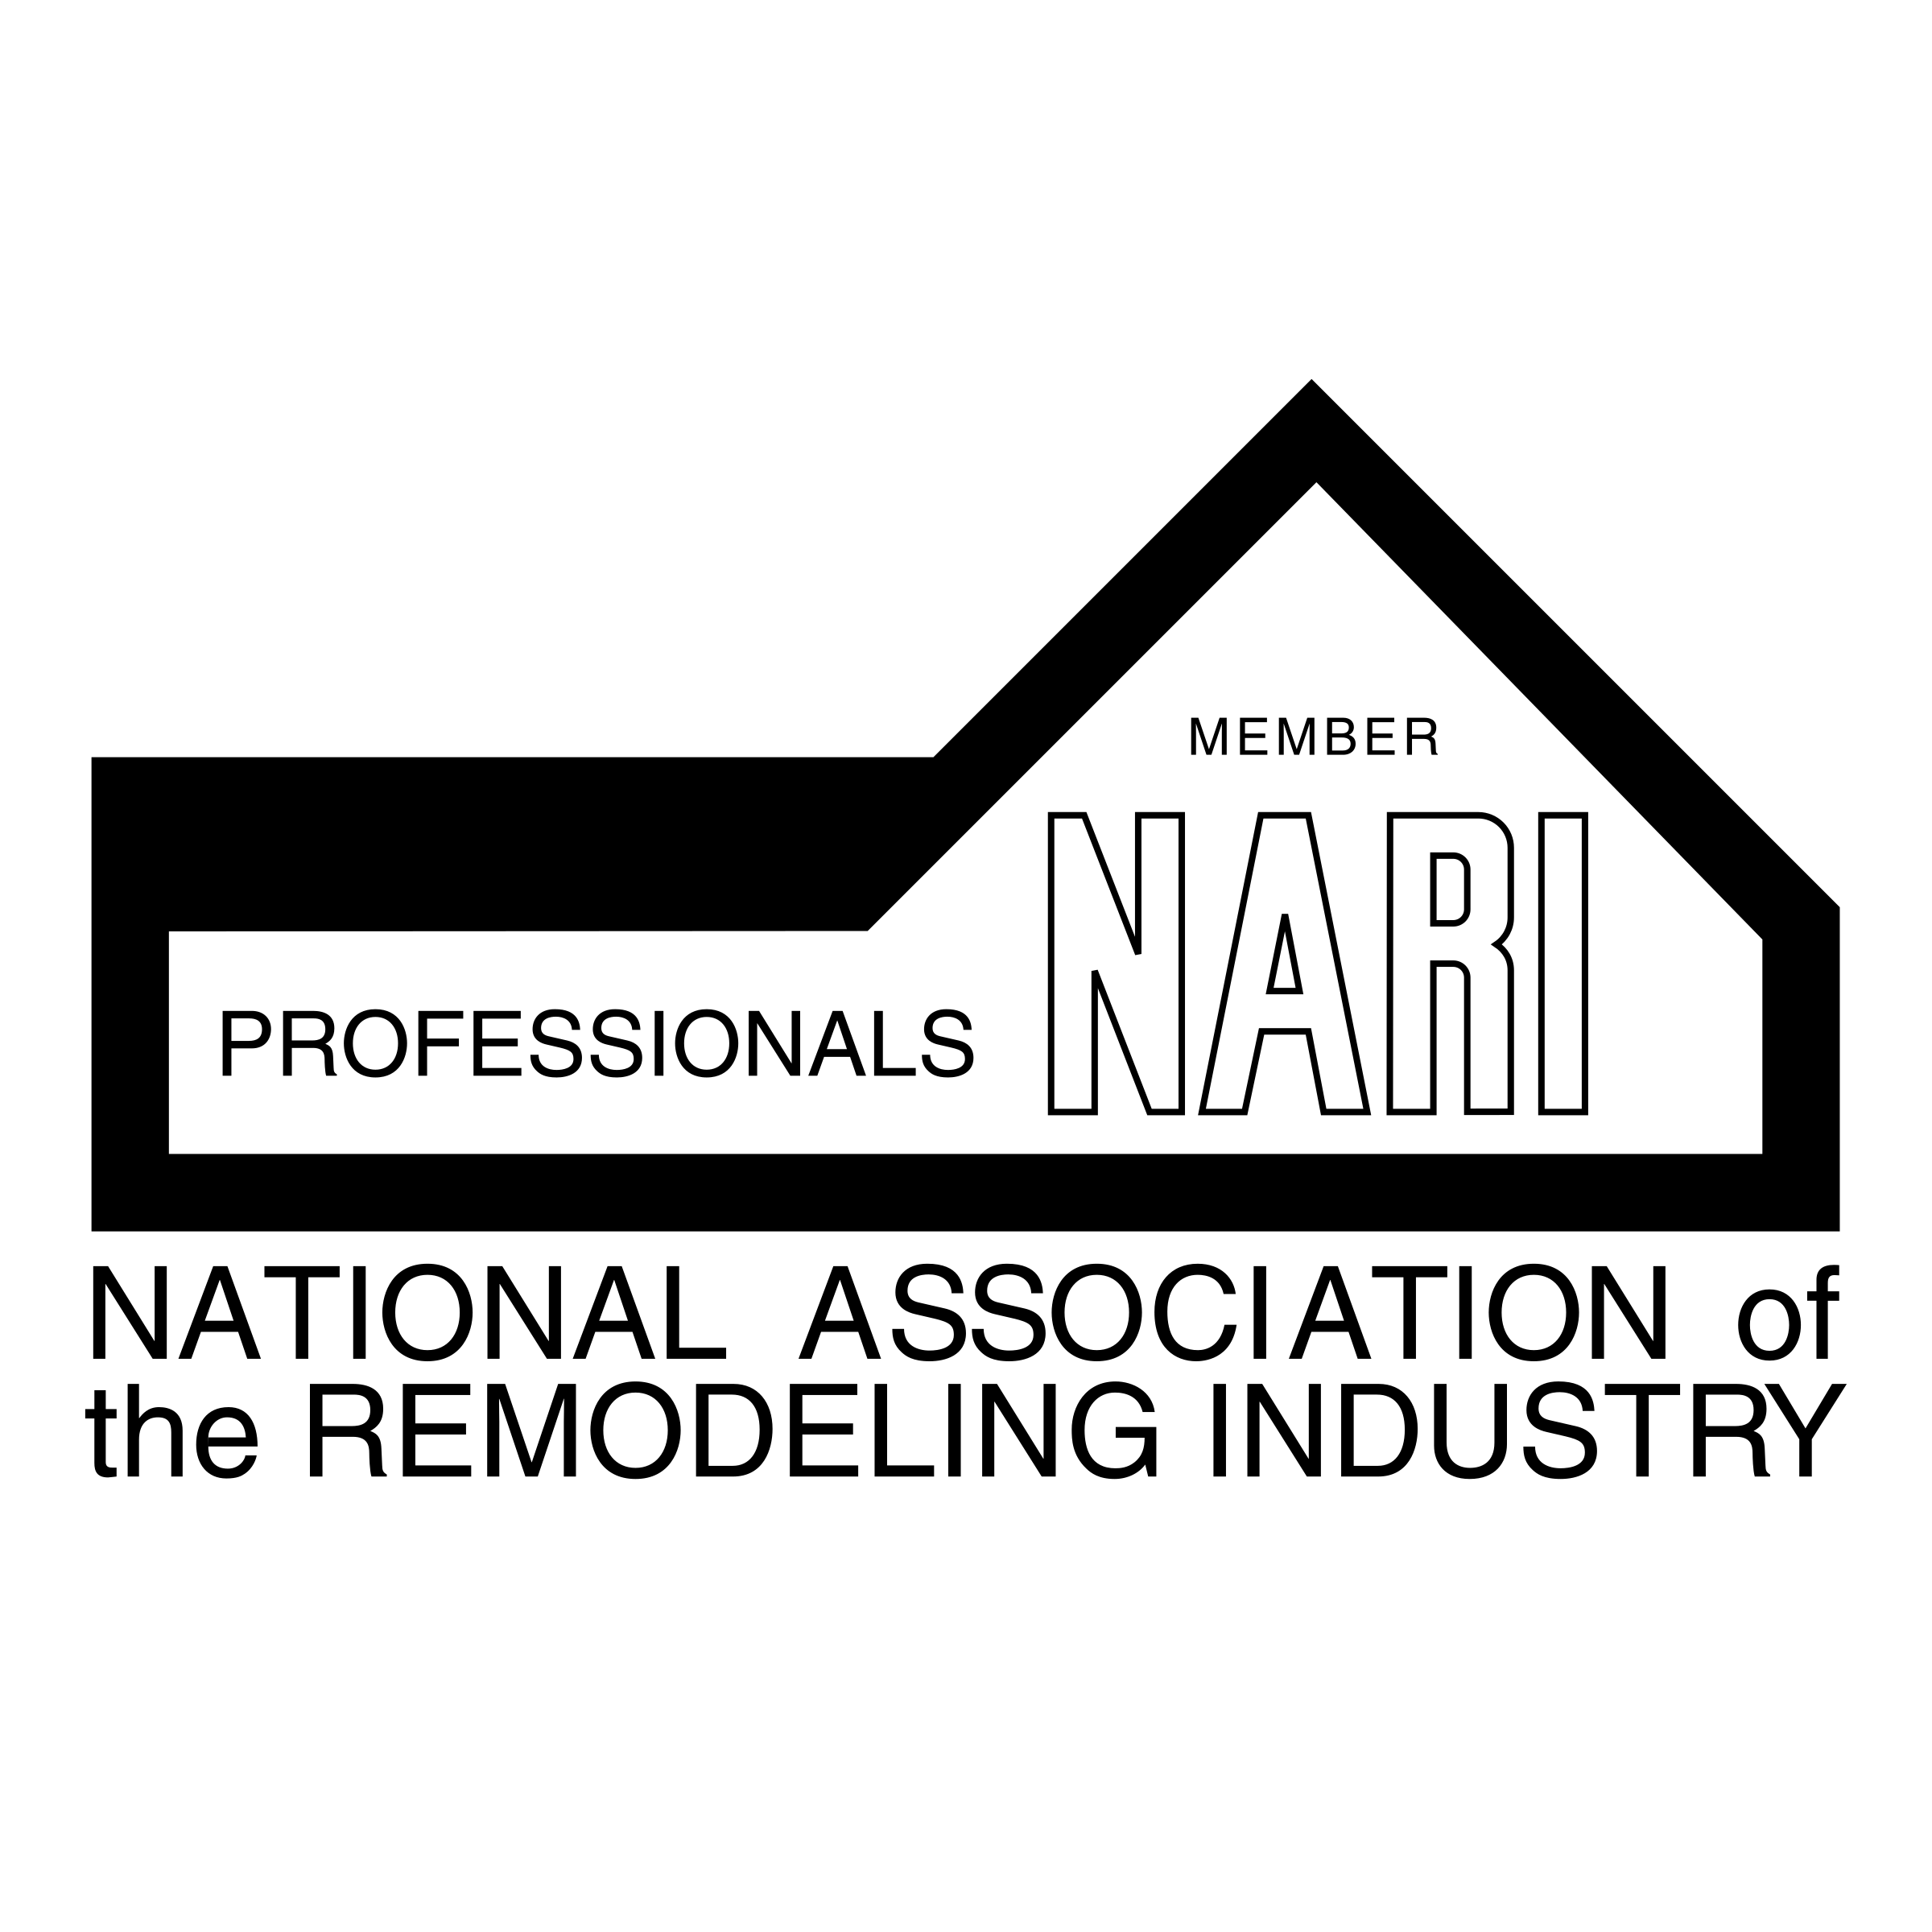 NARI Logo PNG Transparent & SVG Vector.